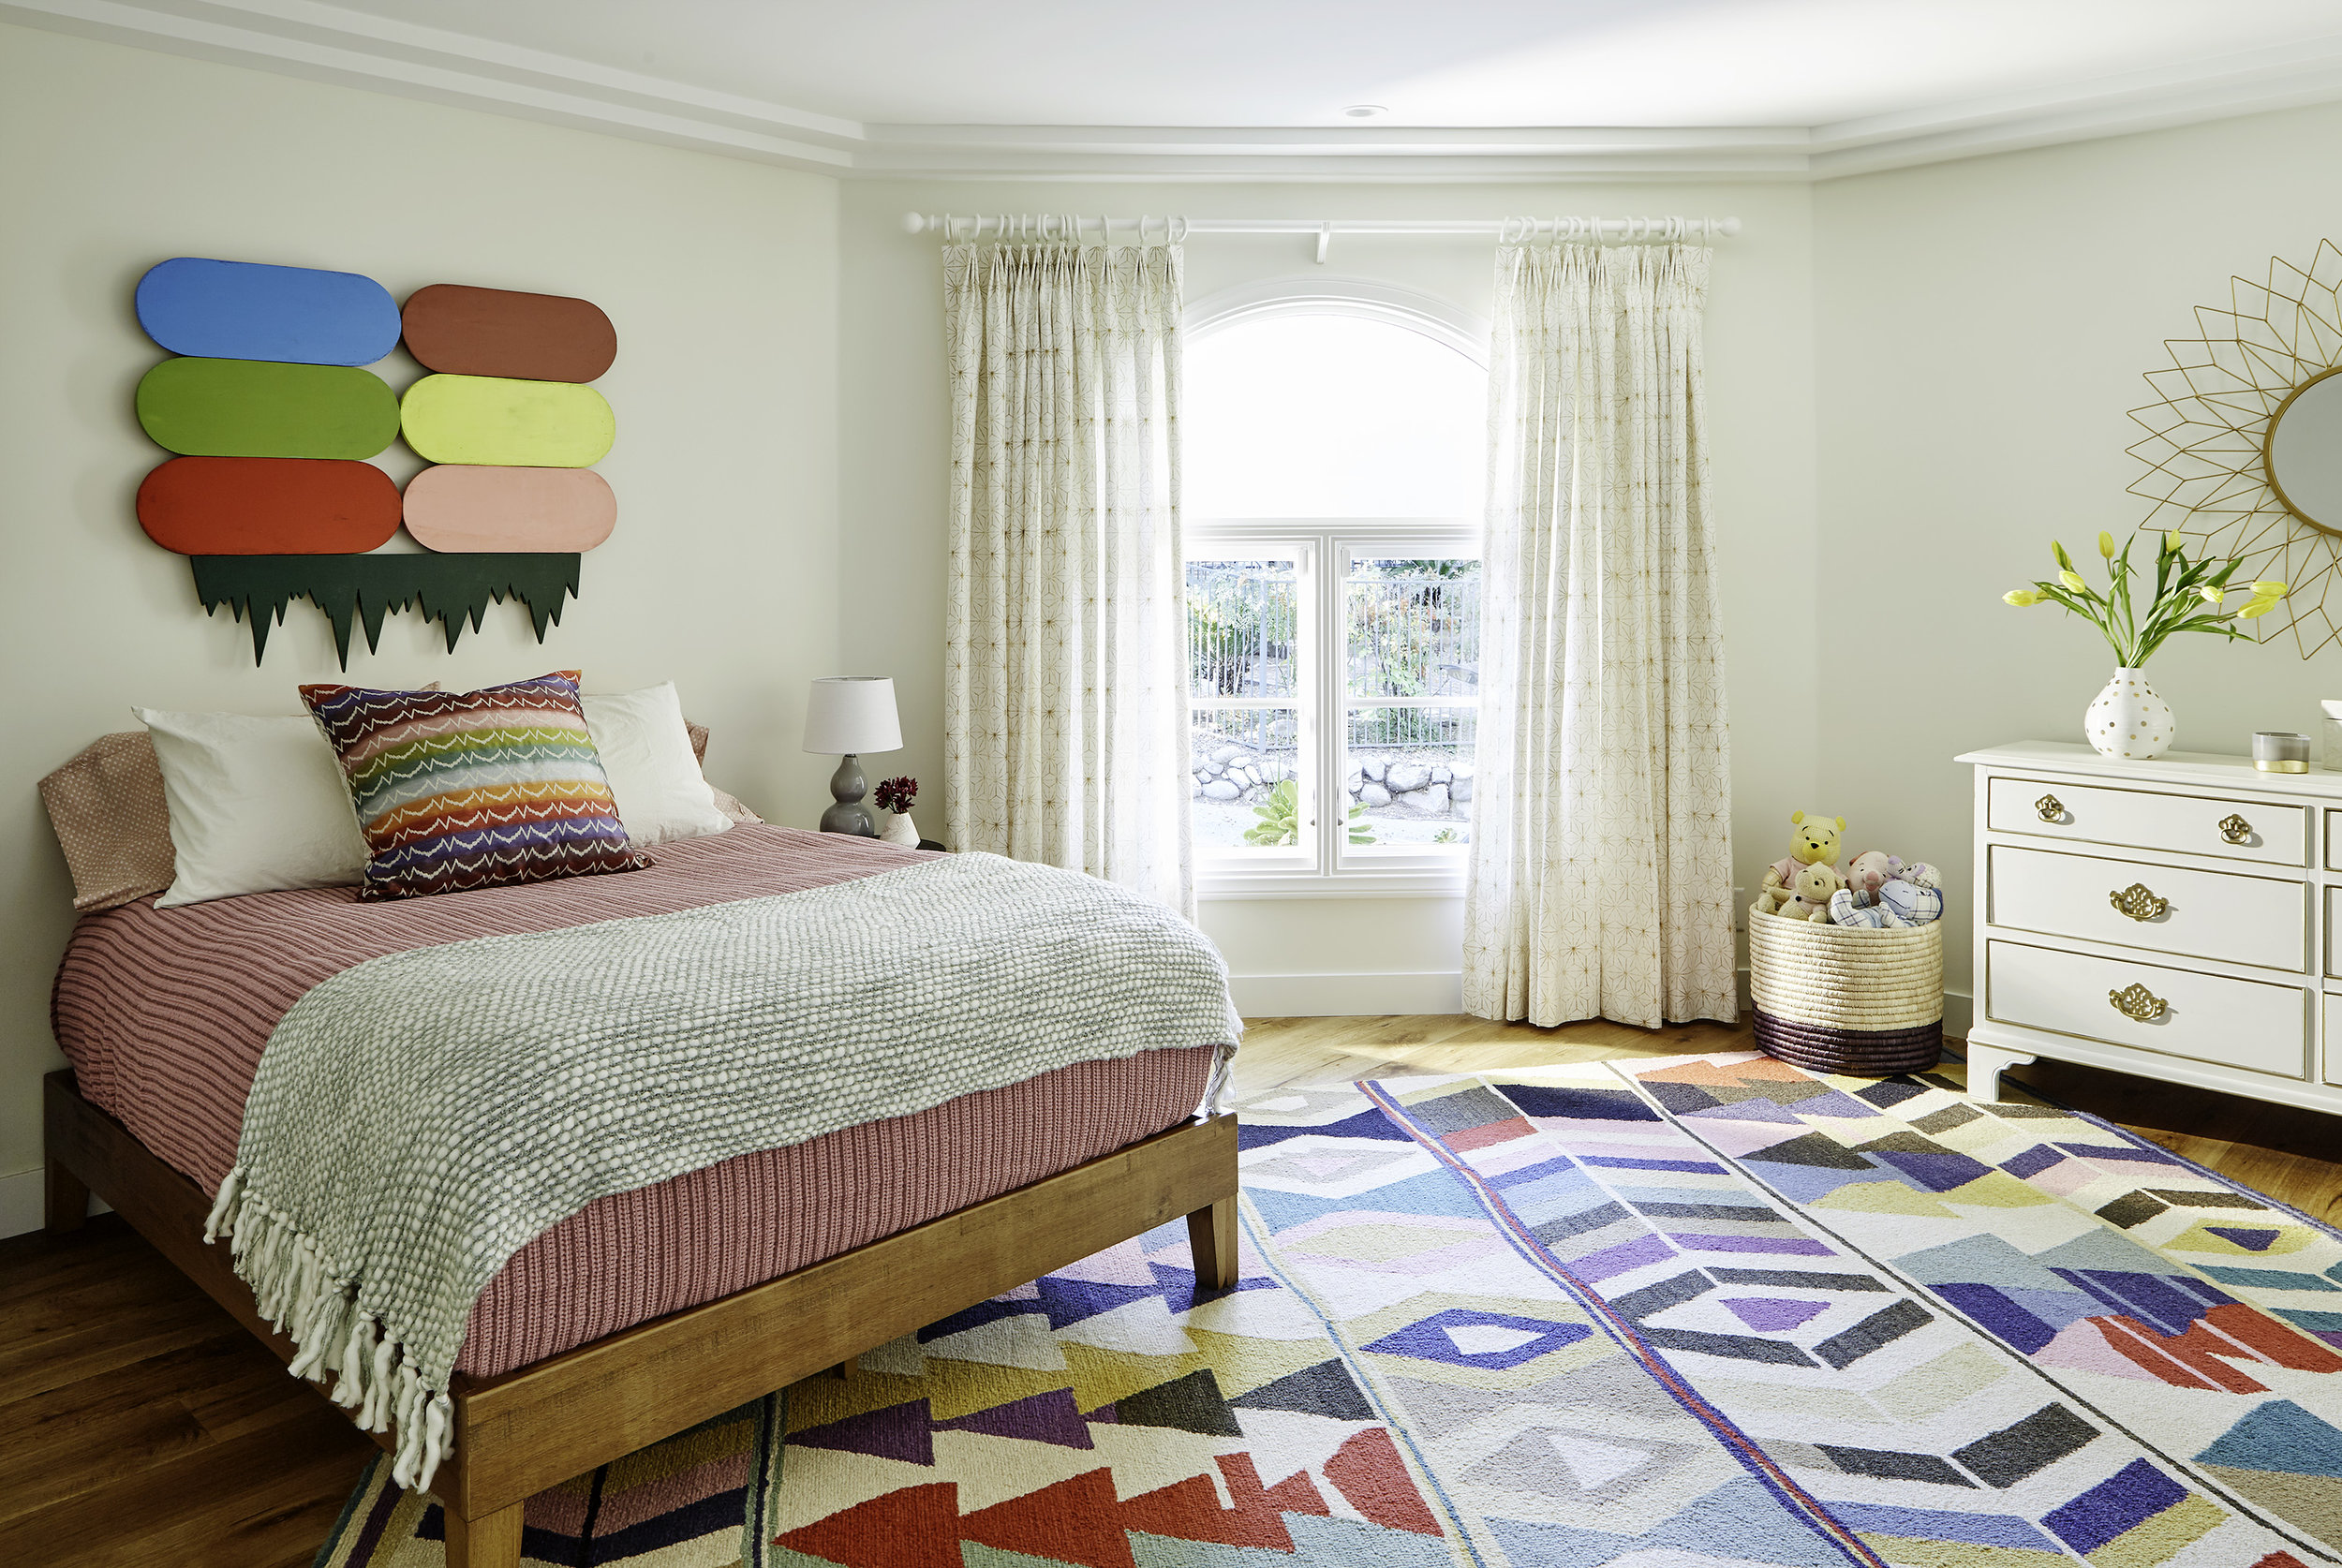 Lily_Spindle_Pasadena_Ciela_Bedroom_1_126.jpg